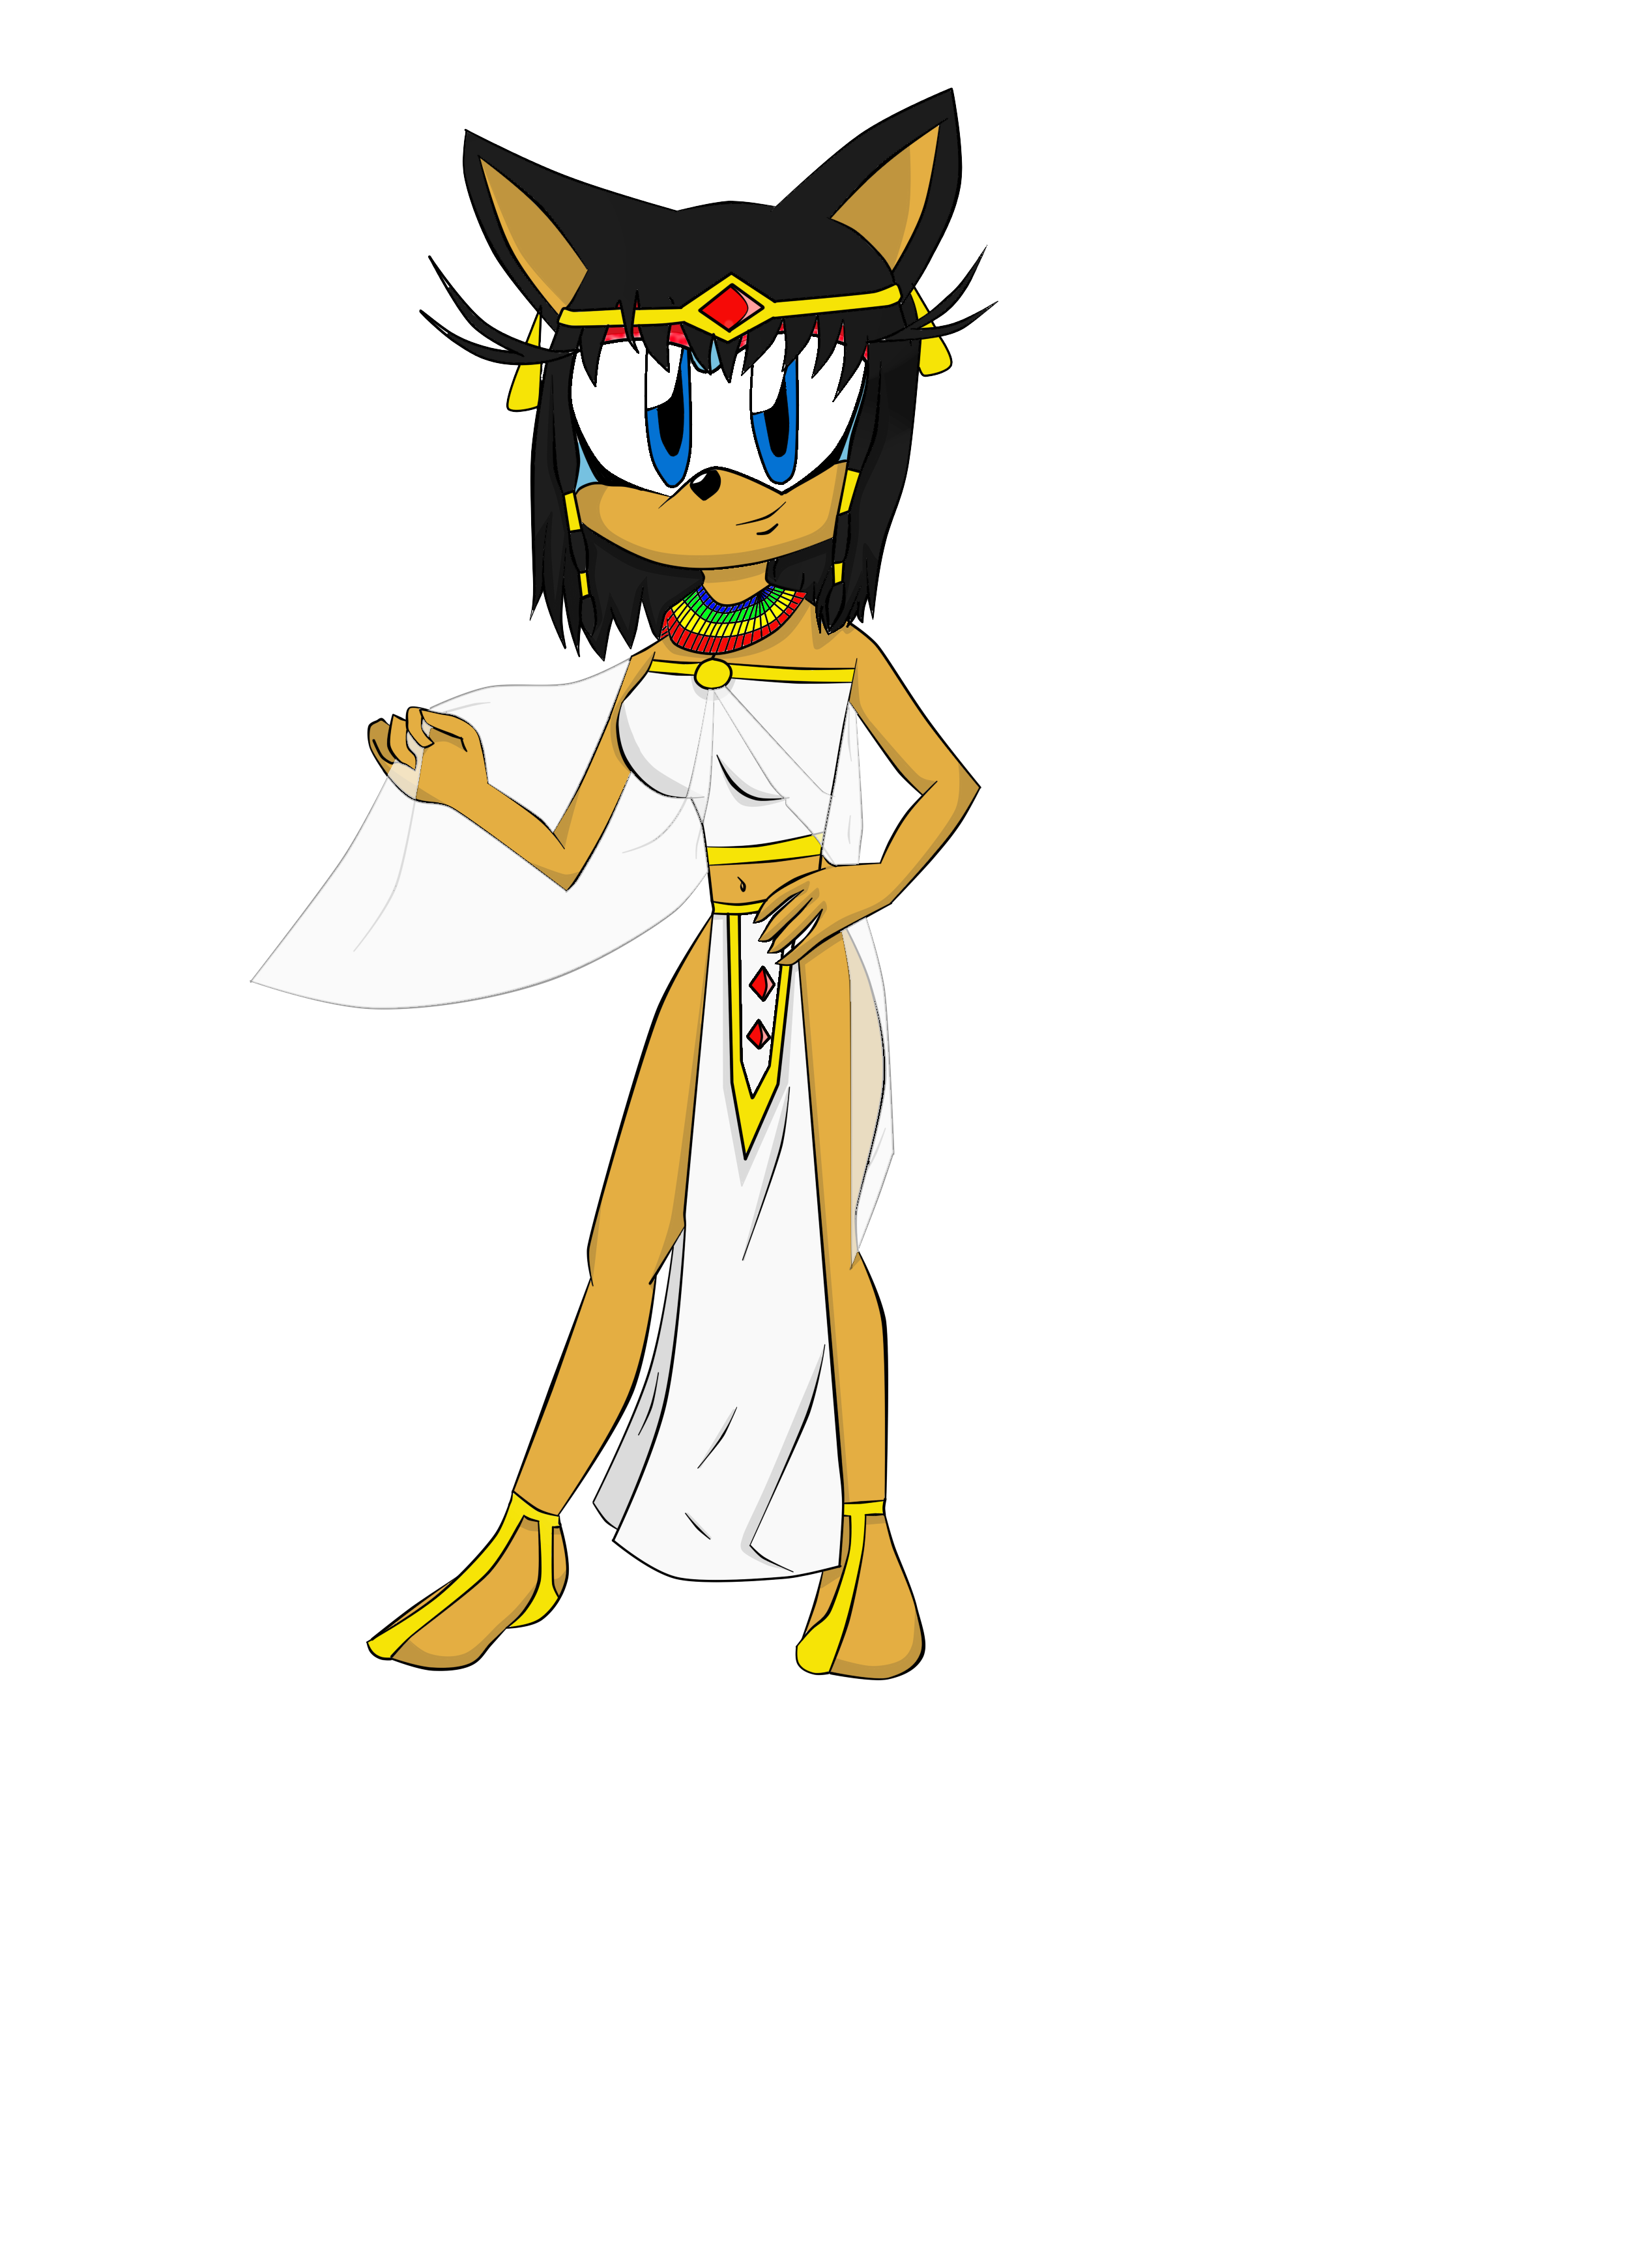 egyptian queen drawing - photo #43